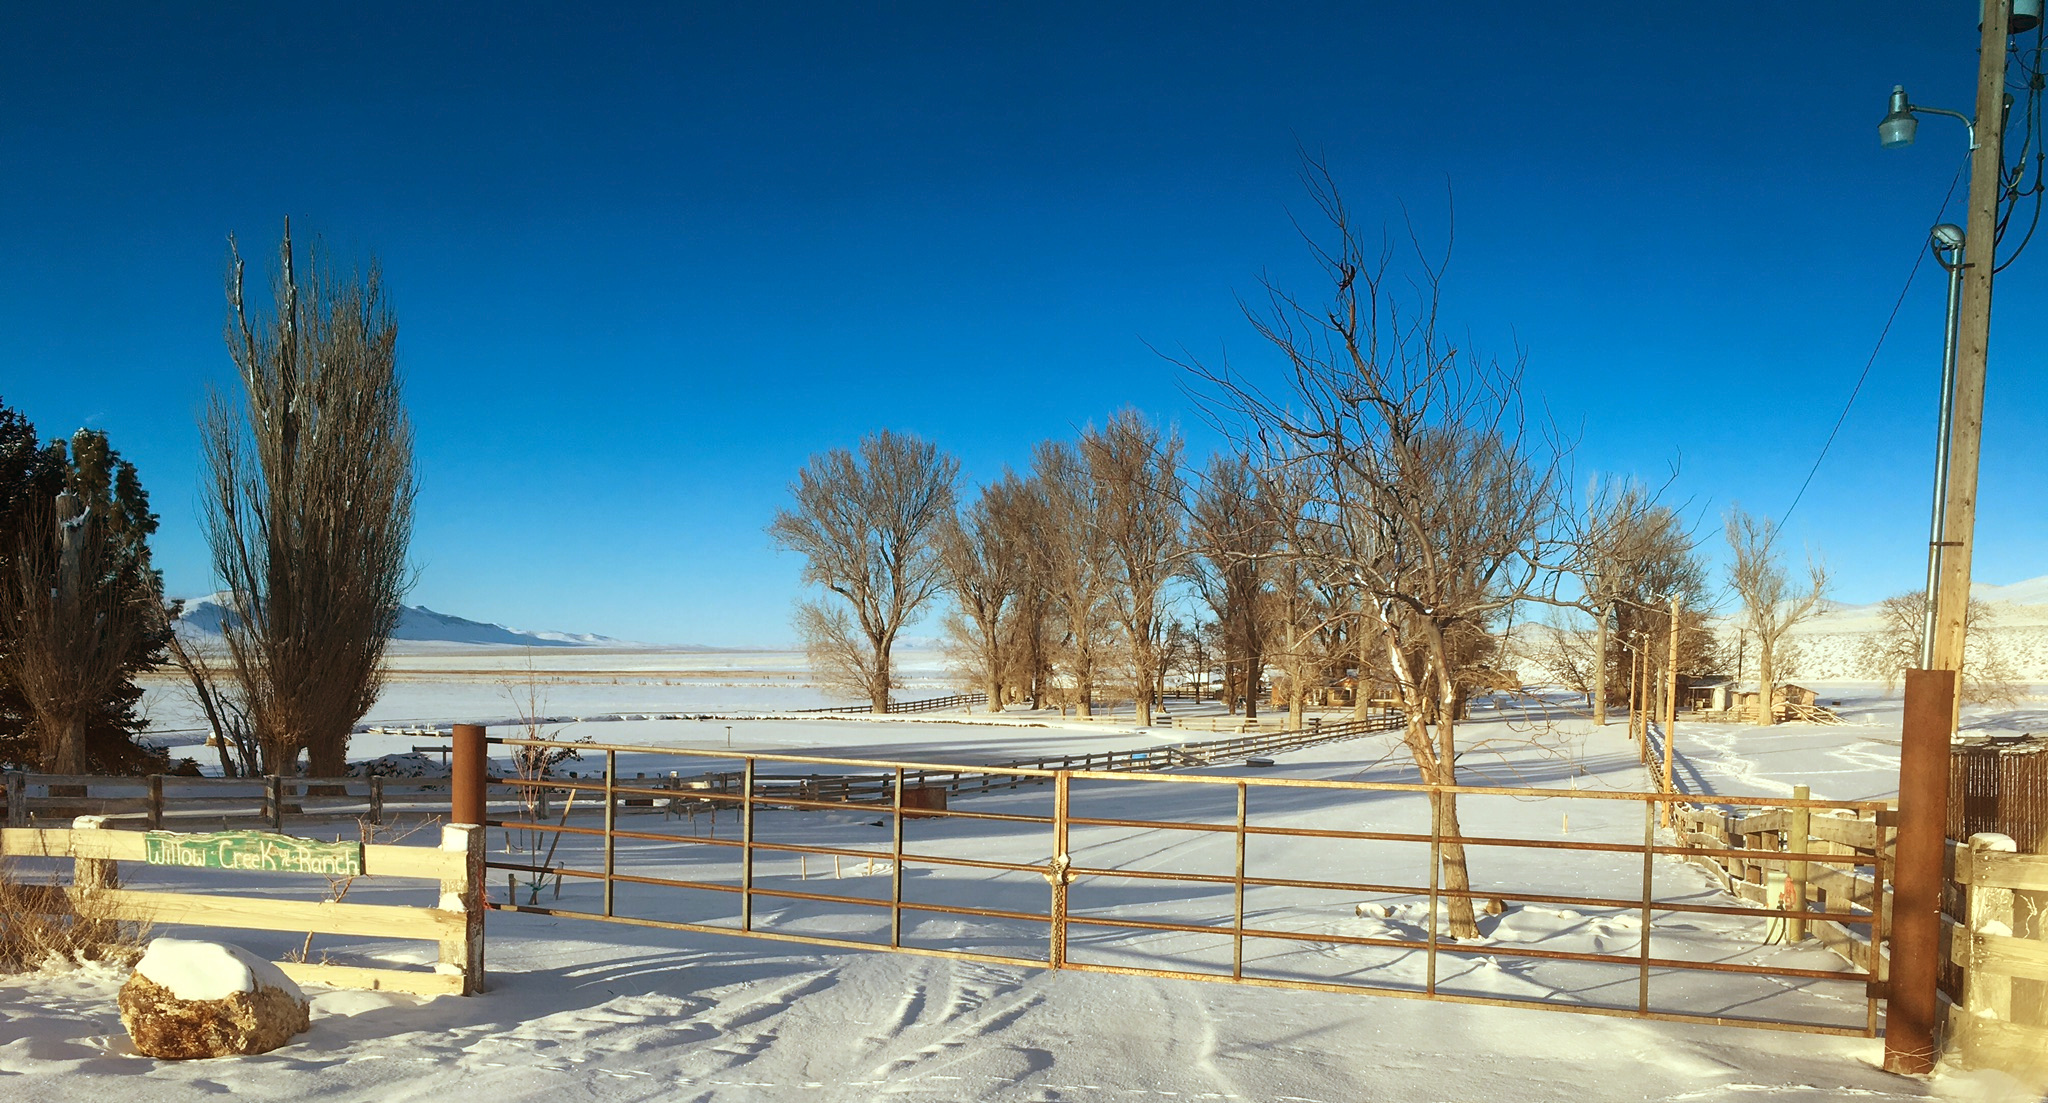 Willow Creek Ranch and Front Gate